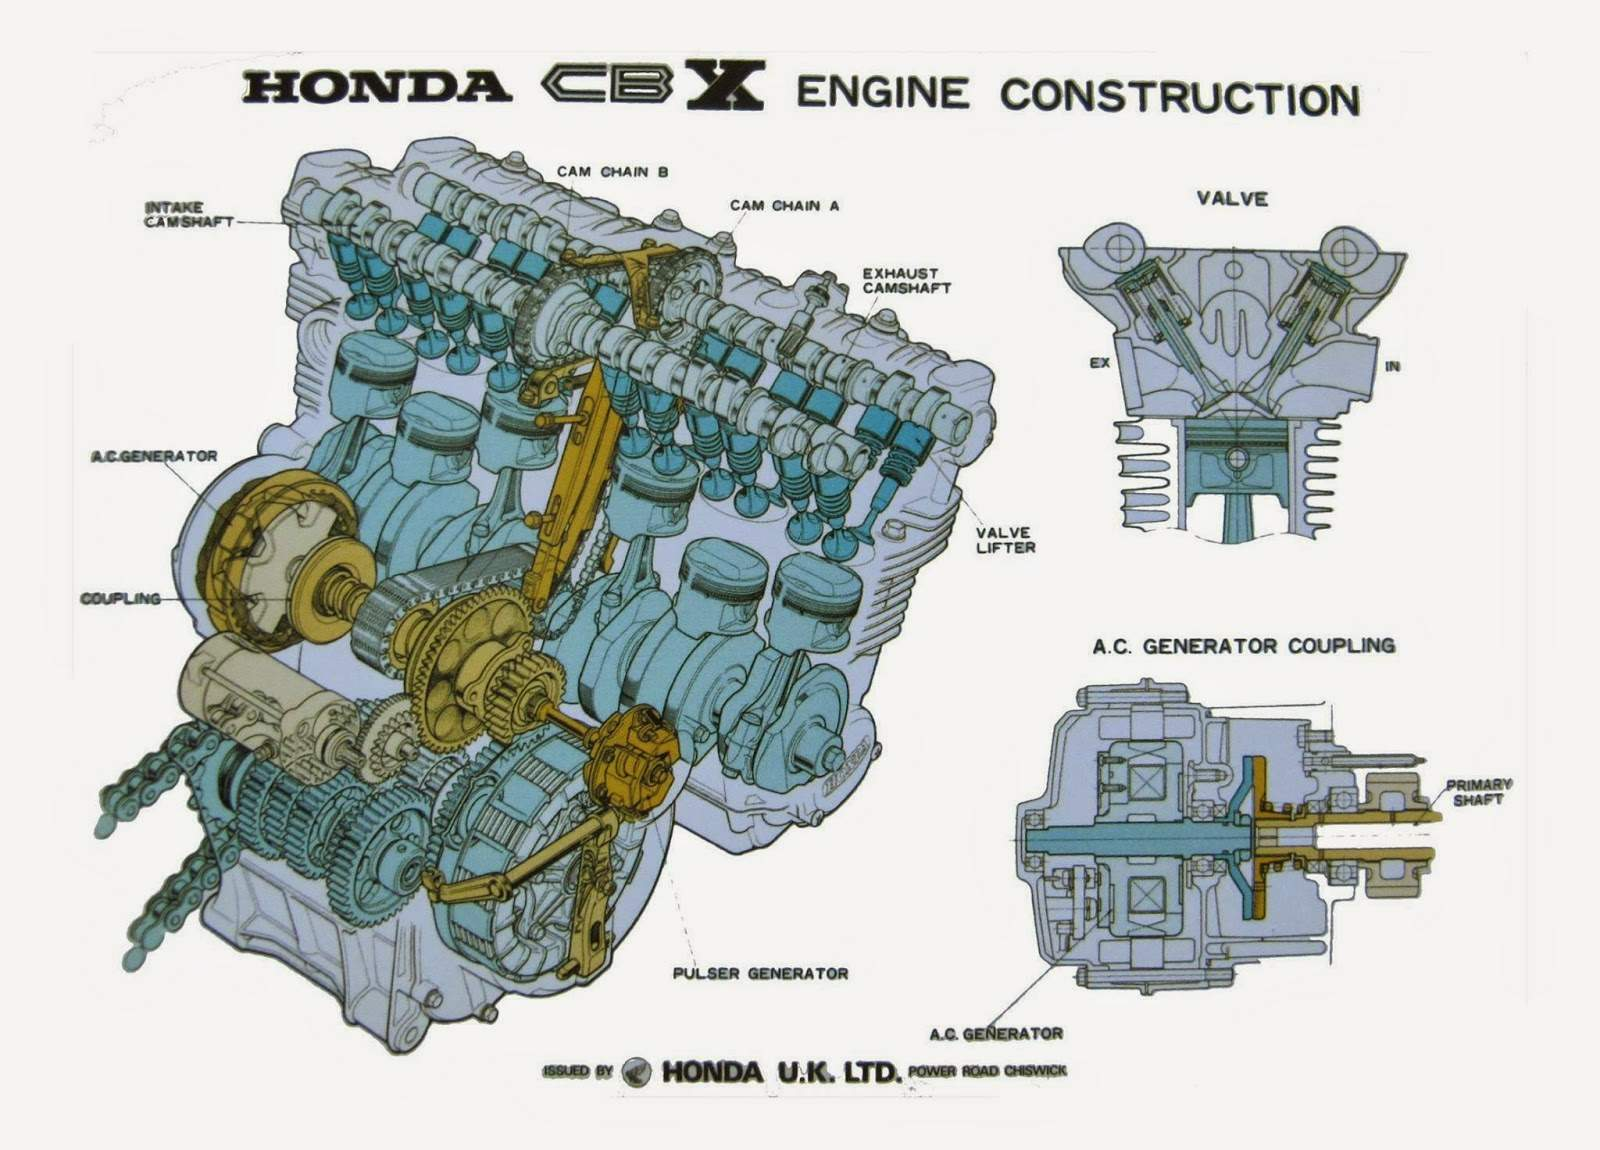 v twin motorcycle engine diagram motorcycle gallery honda cbx1000